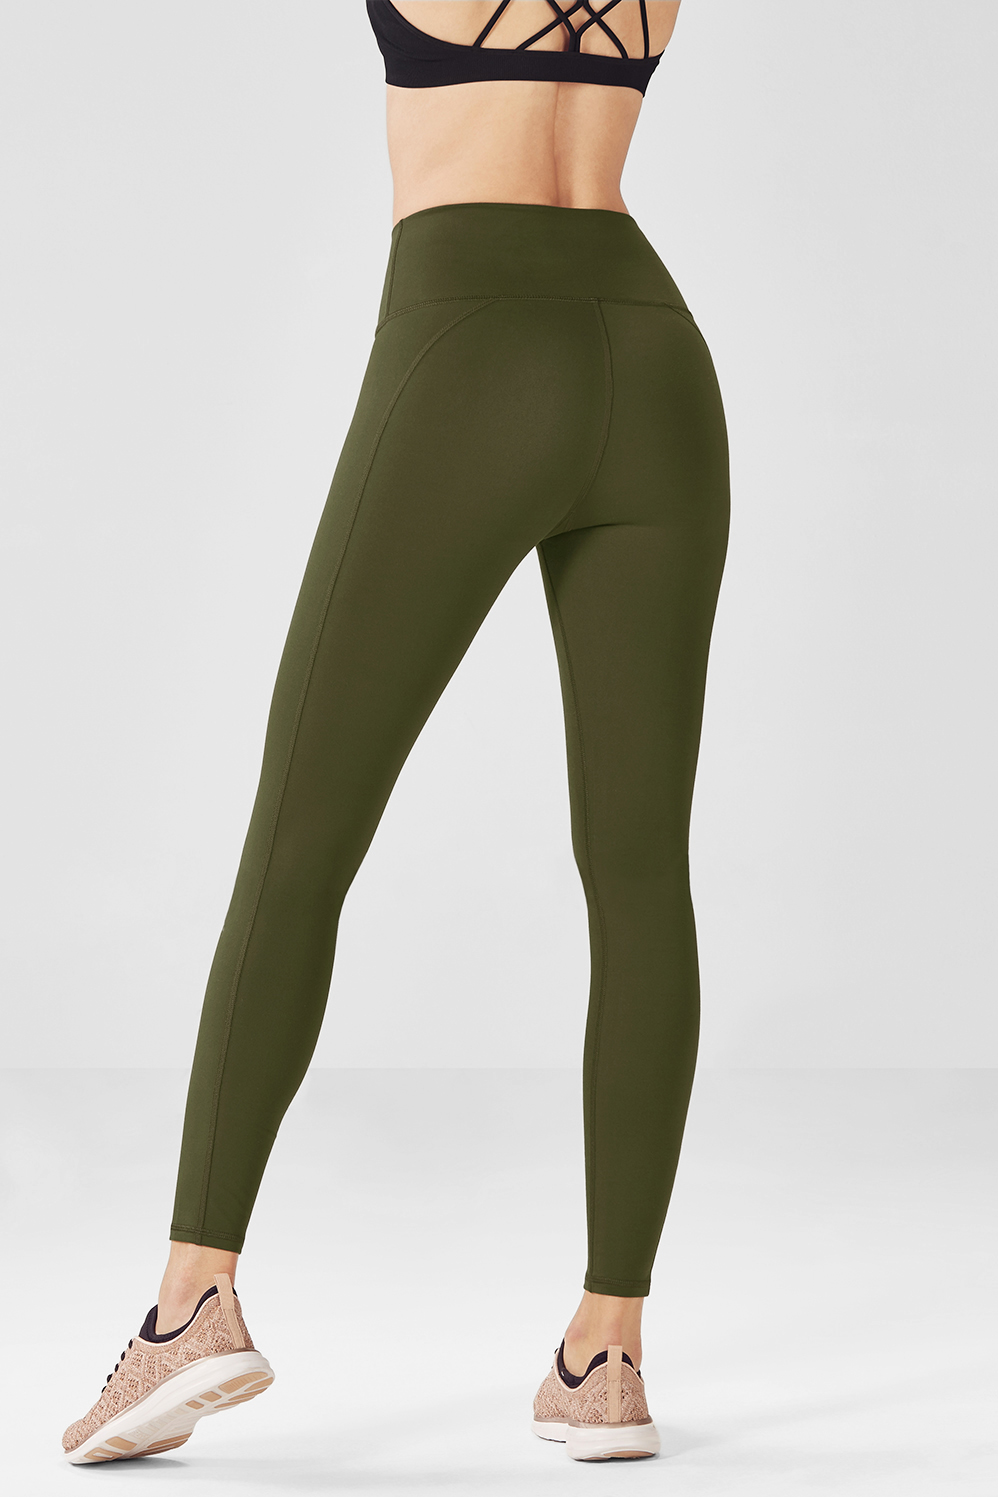 09b8789a5e673 High-Waisted Solid PowerHold® 7/8 - Dark Olive